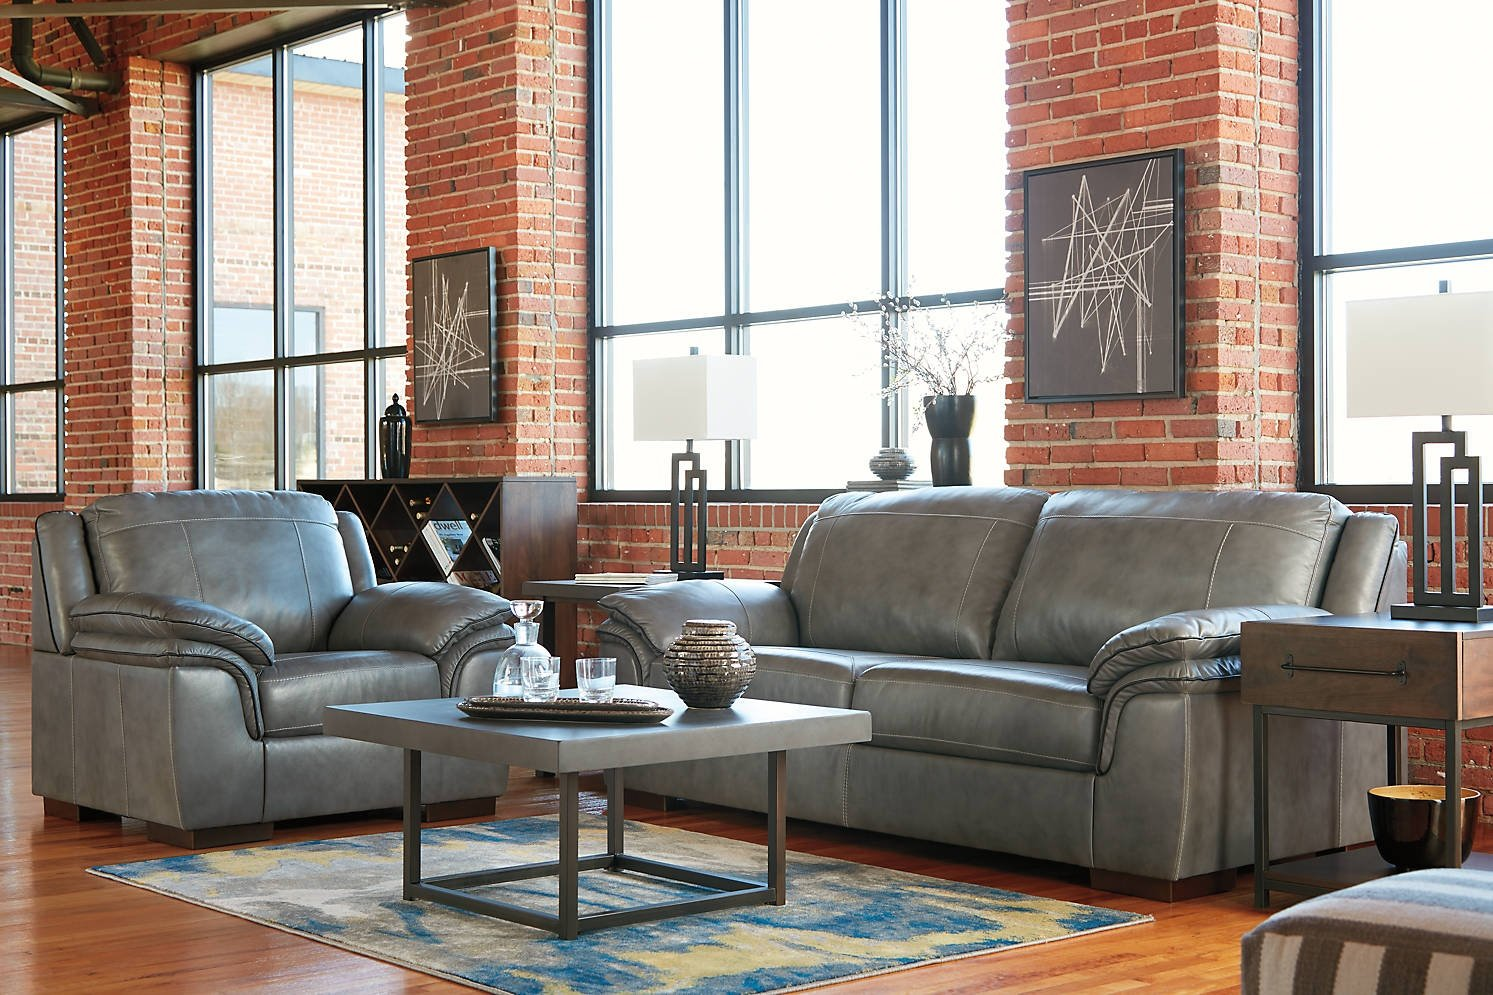 Islebrook Living Room Set (152) Available in different colors